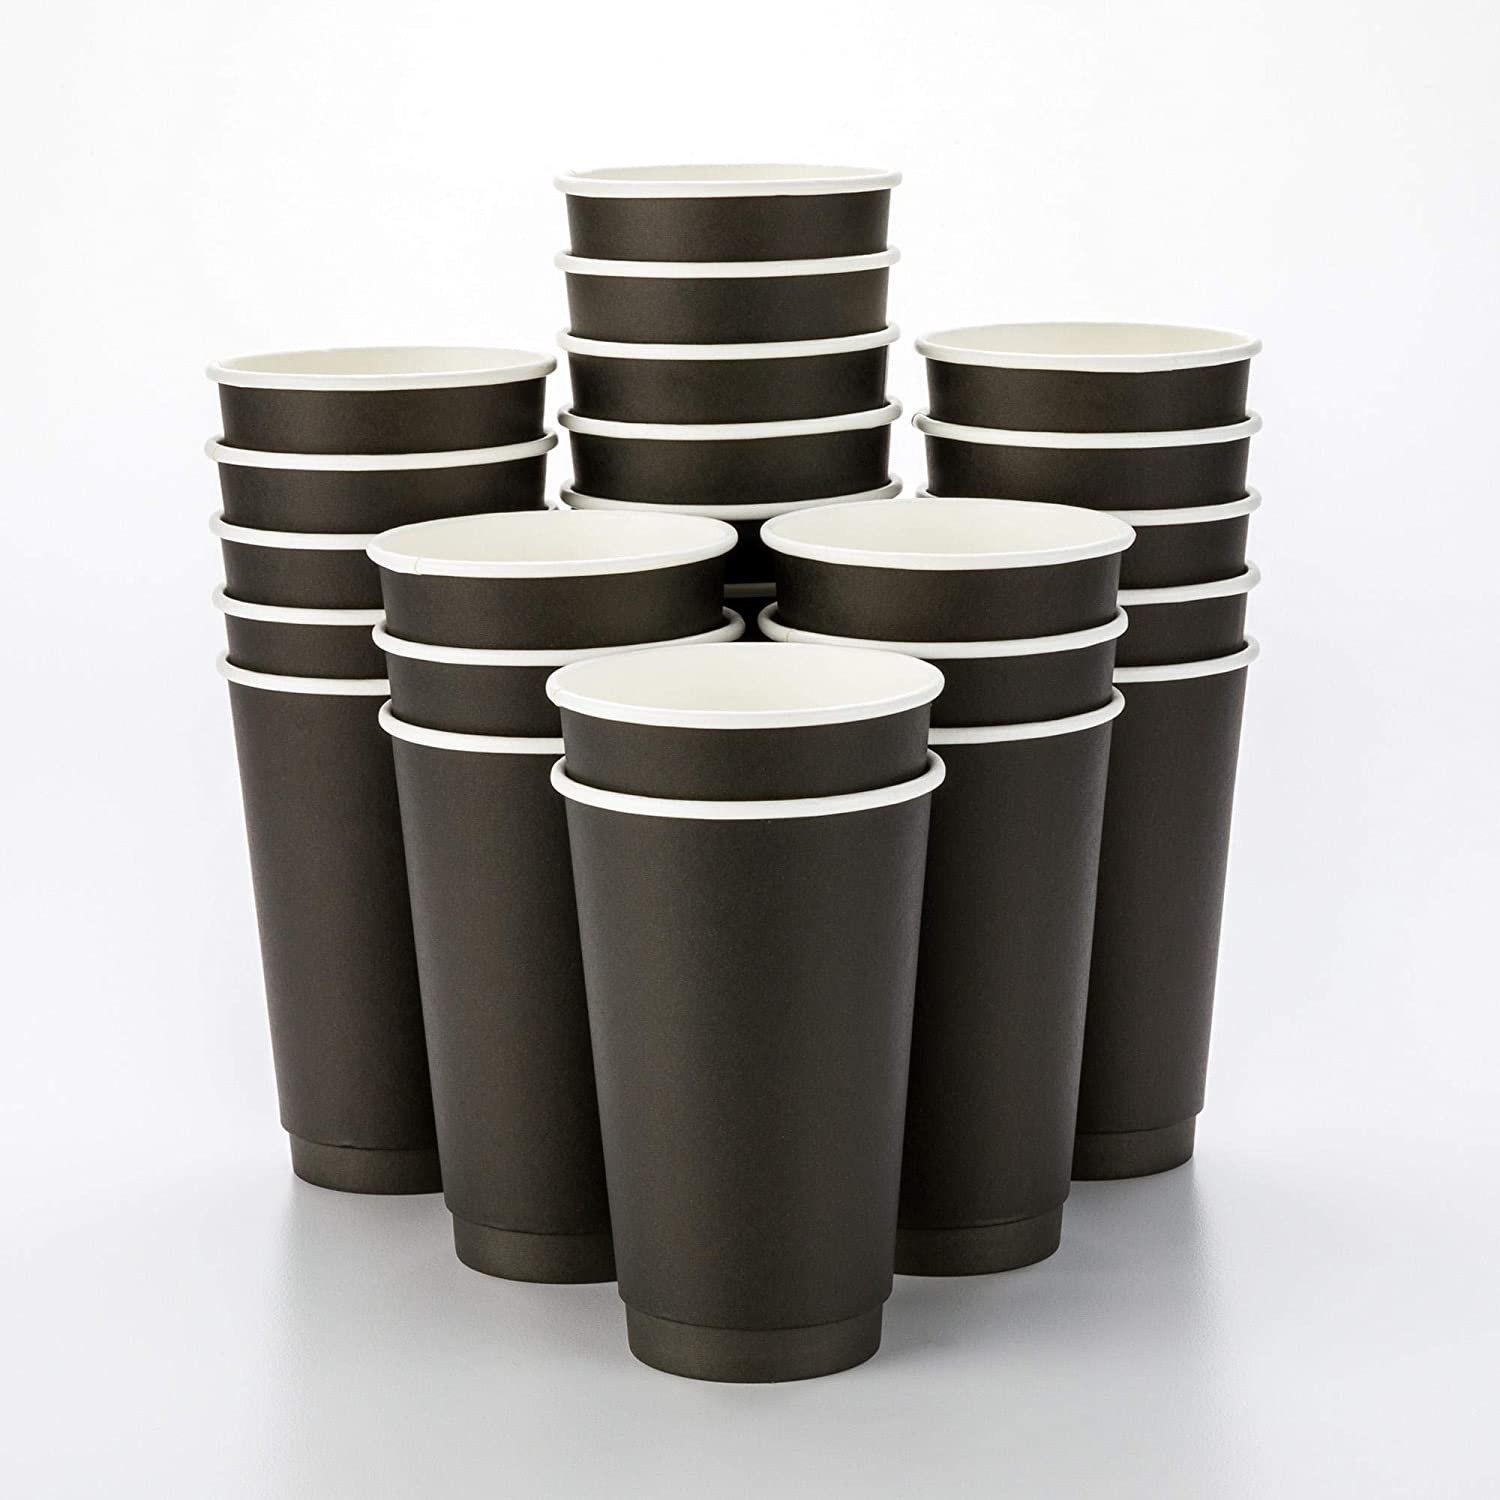 500-CT Disposable Black 16-oz Hot Beverage Cups with Double Wall Design: No Need for Sleeves - Perfect for Cafes - Eco Friendly Recyclable Paper - Insulated - Wholesale Takeout Coffee Cup